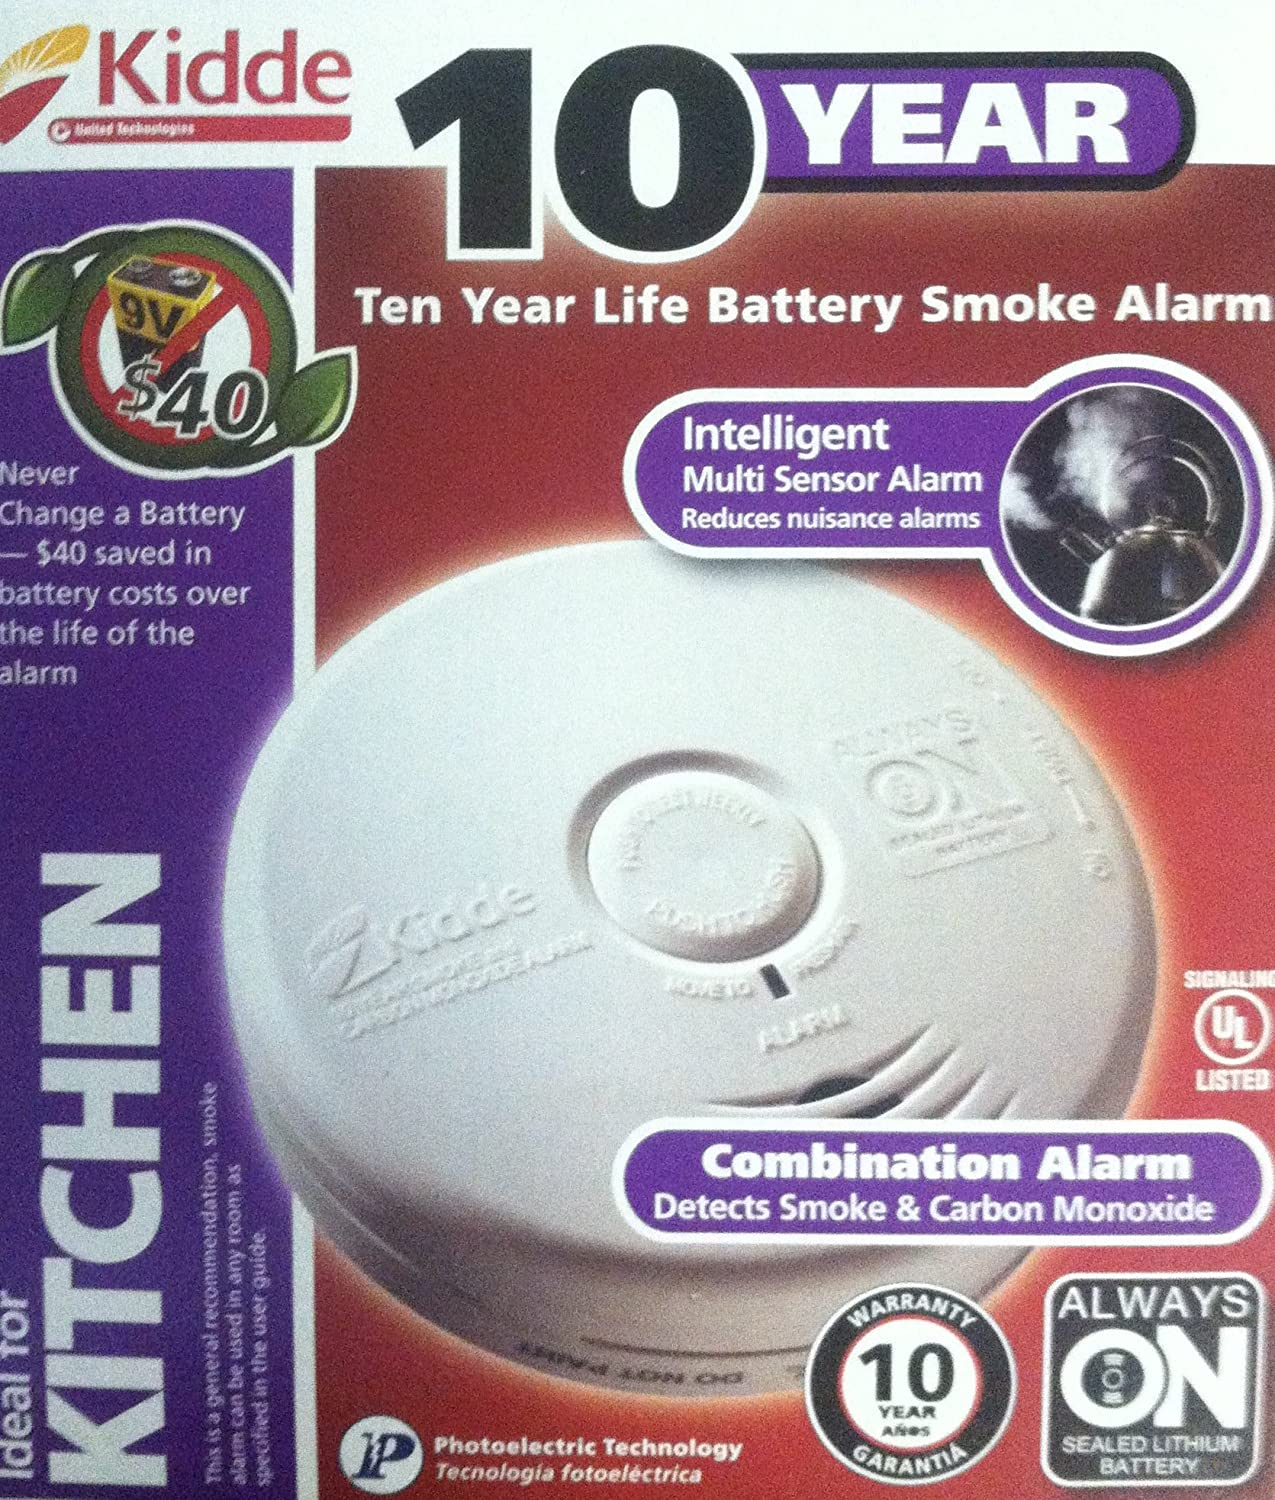 Kidde P3010 K CO Battery Operated Combination Carbon Monoxide and Smoke Alarm with Photoelectric Sensor New Modal 2 Pack